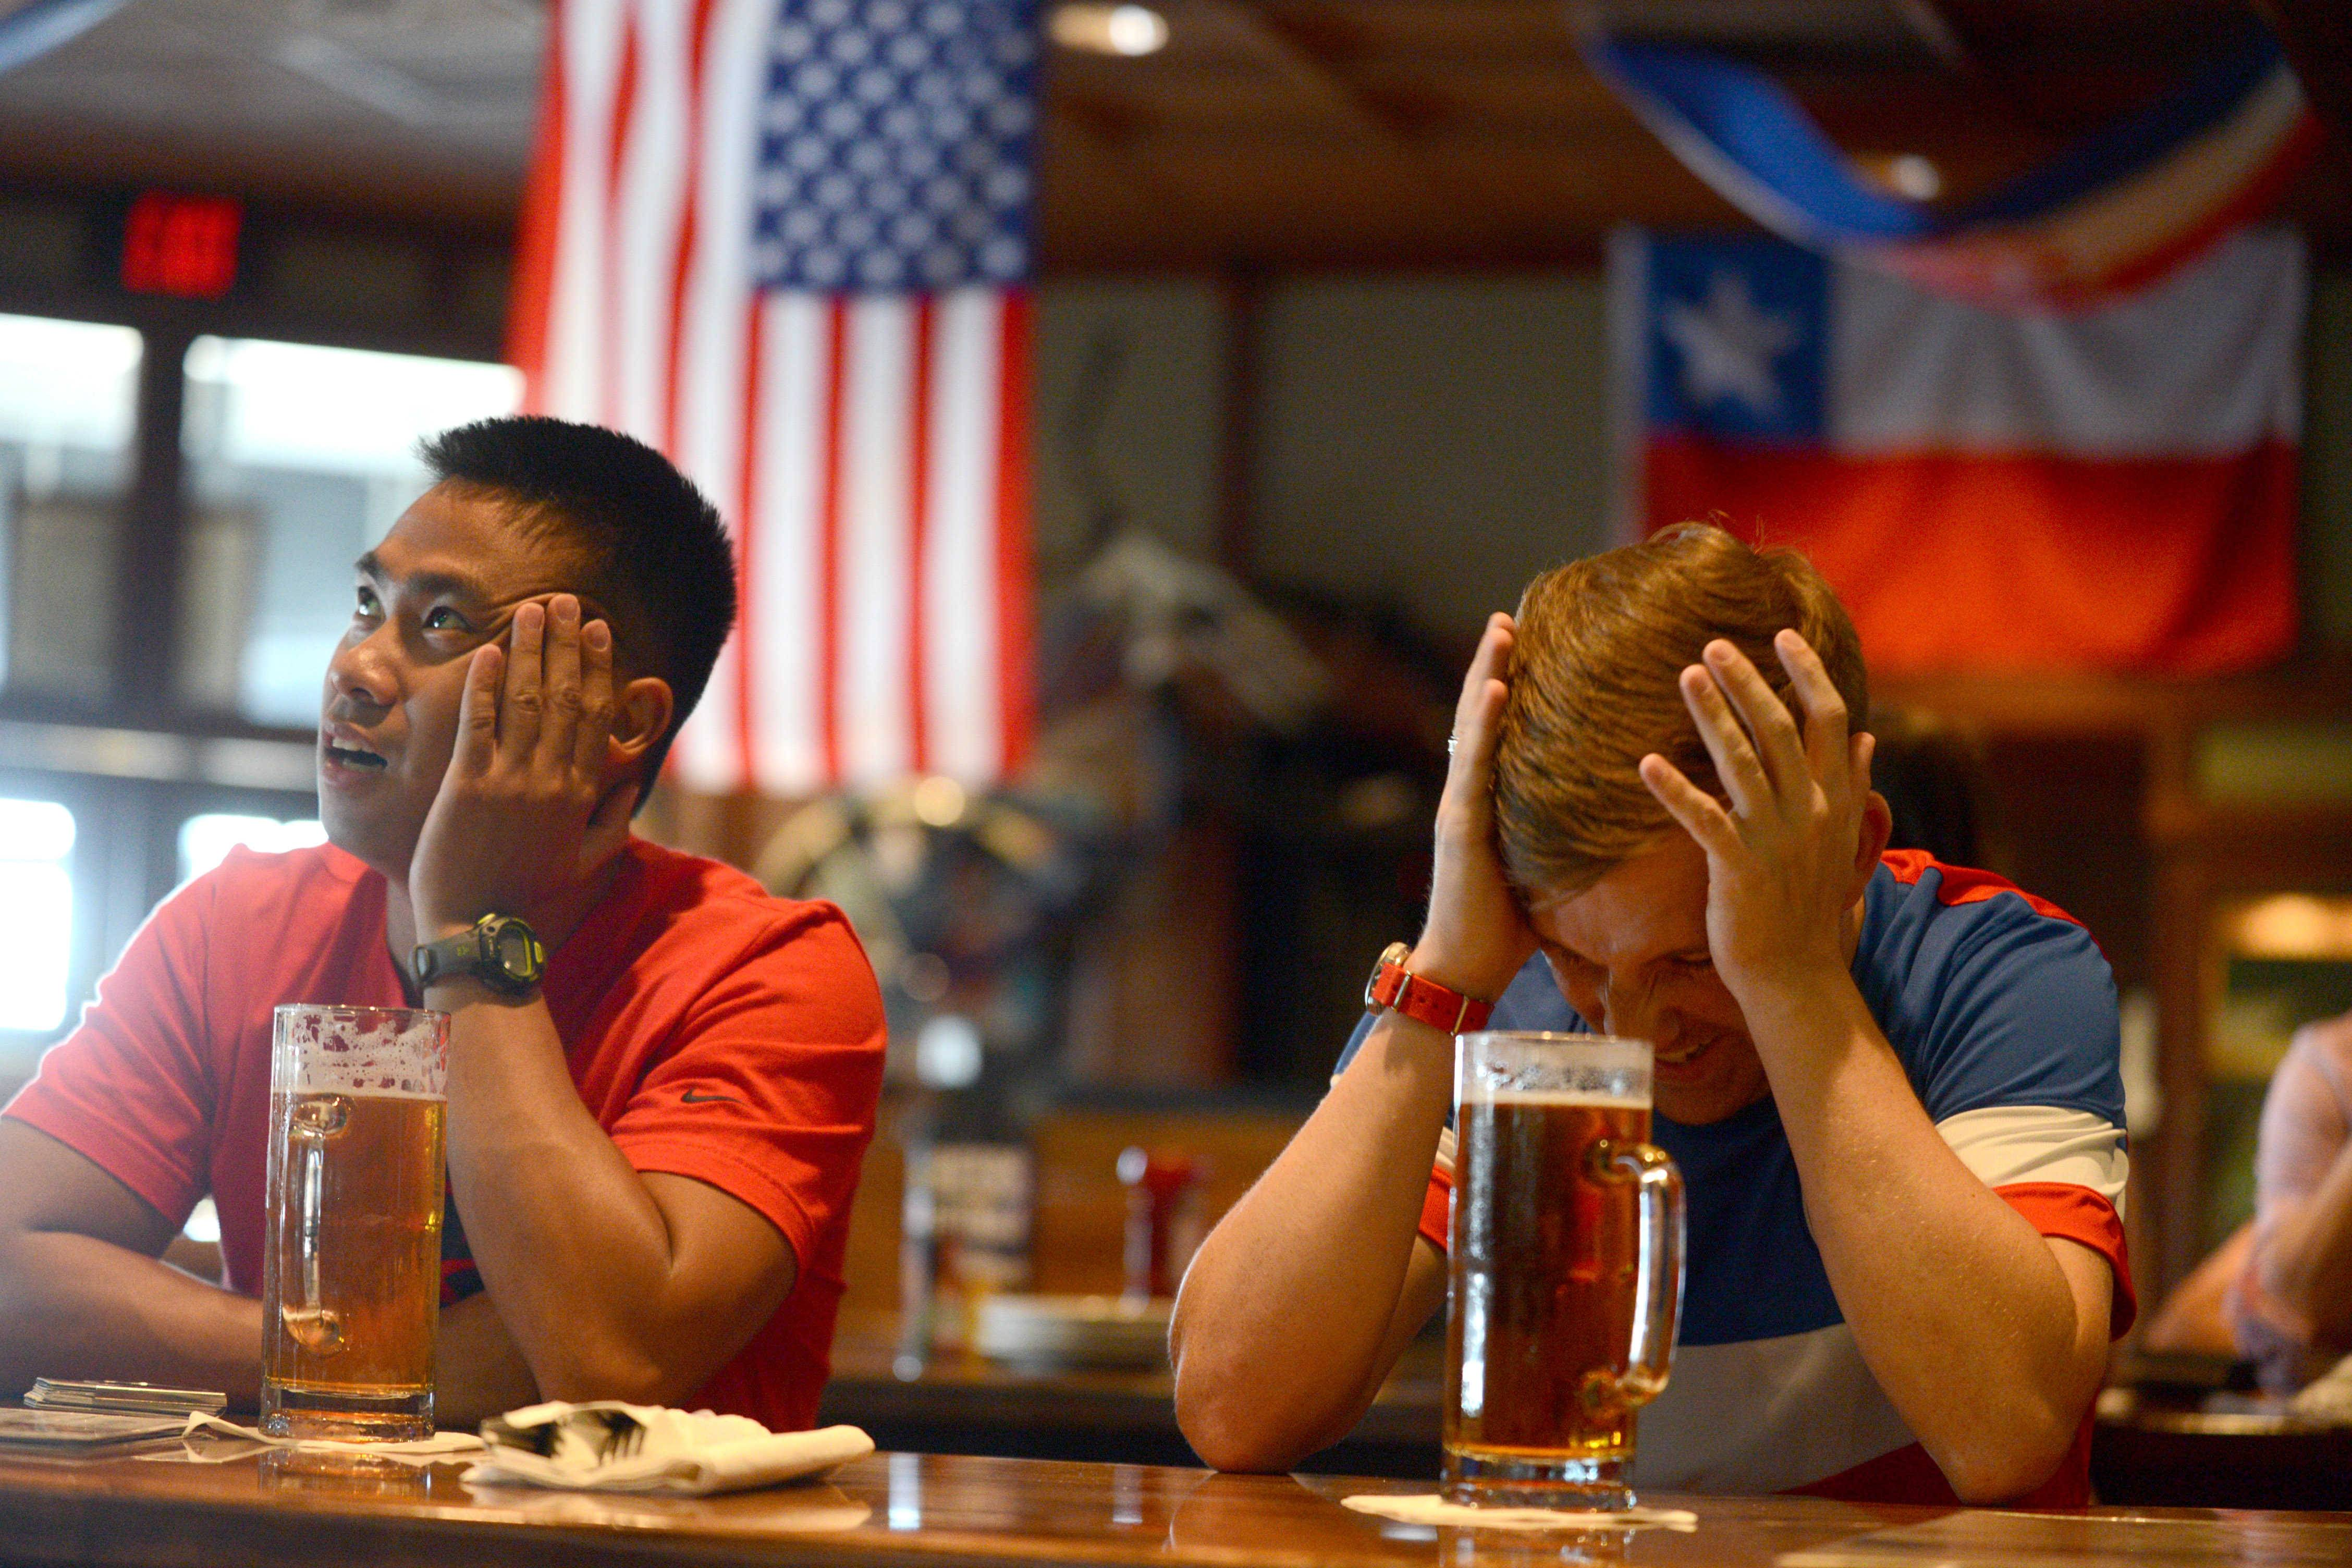 Jonathan Acosta, left, of Addison, and Steve Jenkins of Hoffman Estates can only hope it gets better for the U.S. team after the Dempsey injury.